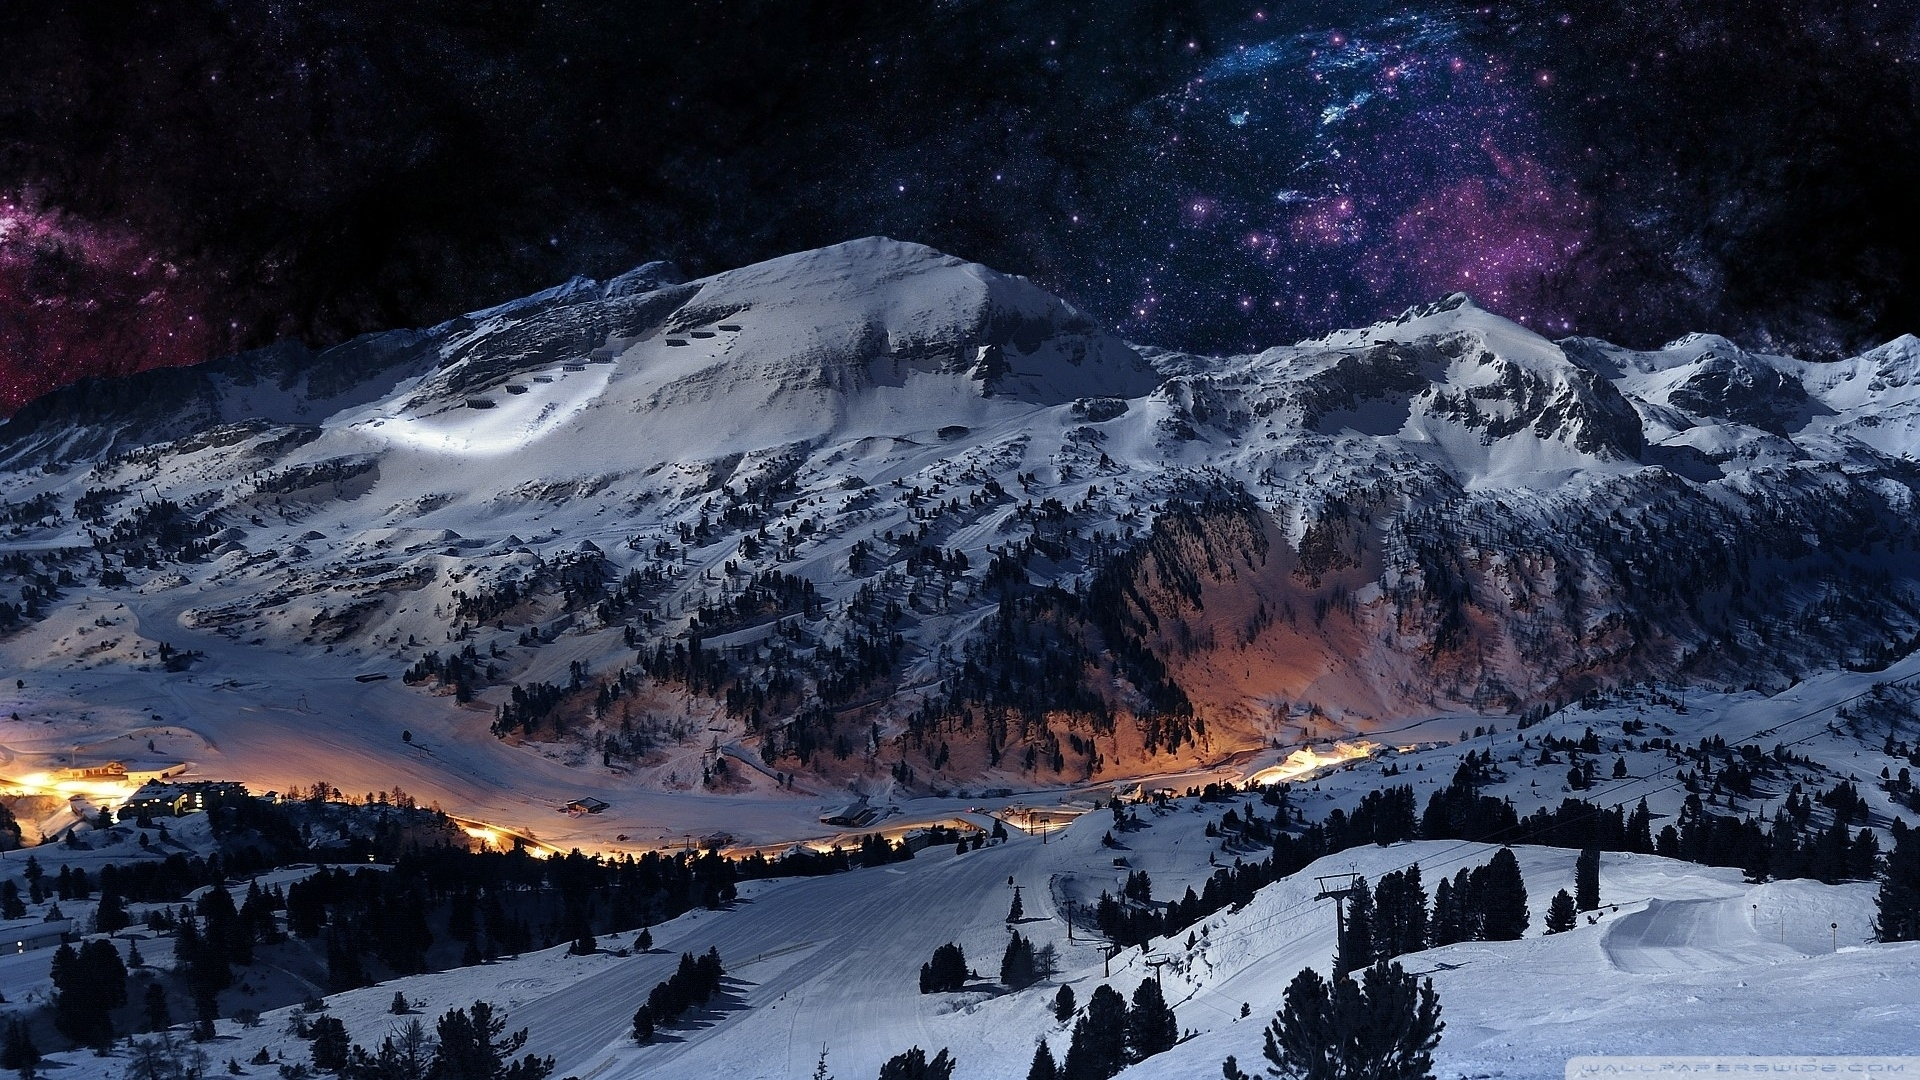 10 New Snow Mountains Wallpaper Night FULL HD 1920×1080 For PC Desktop